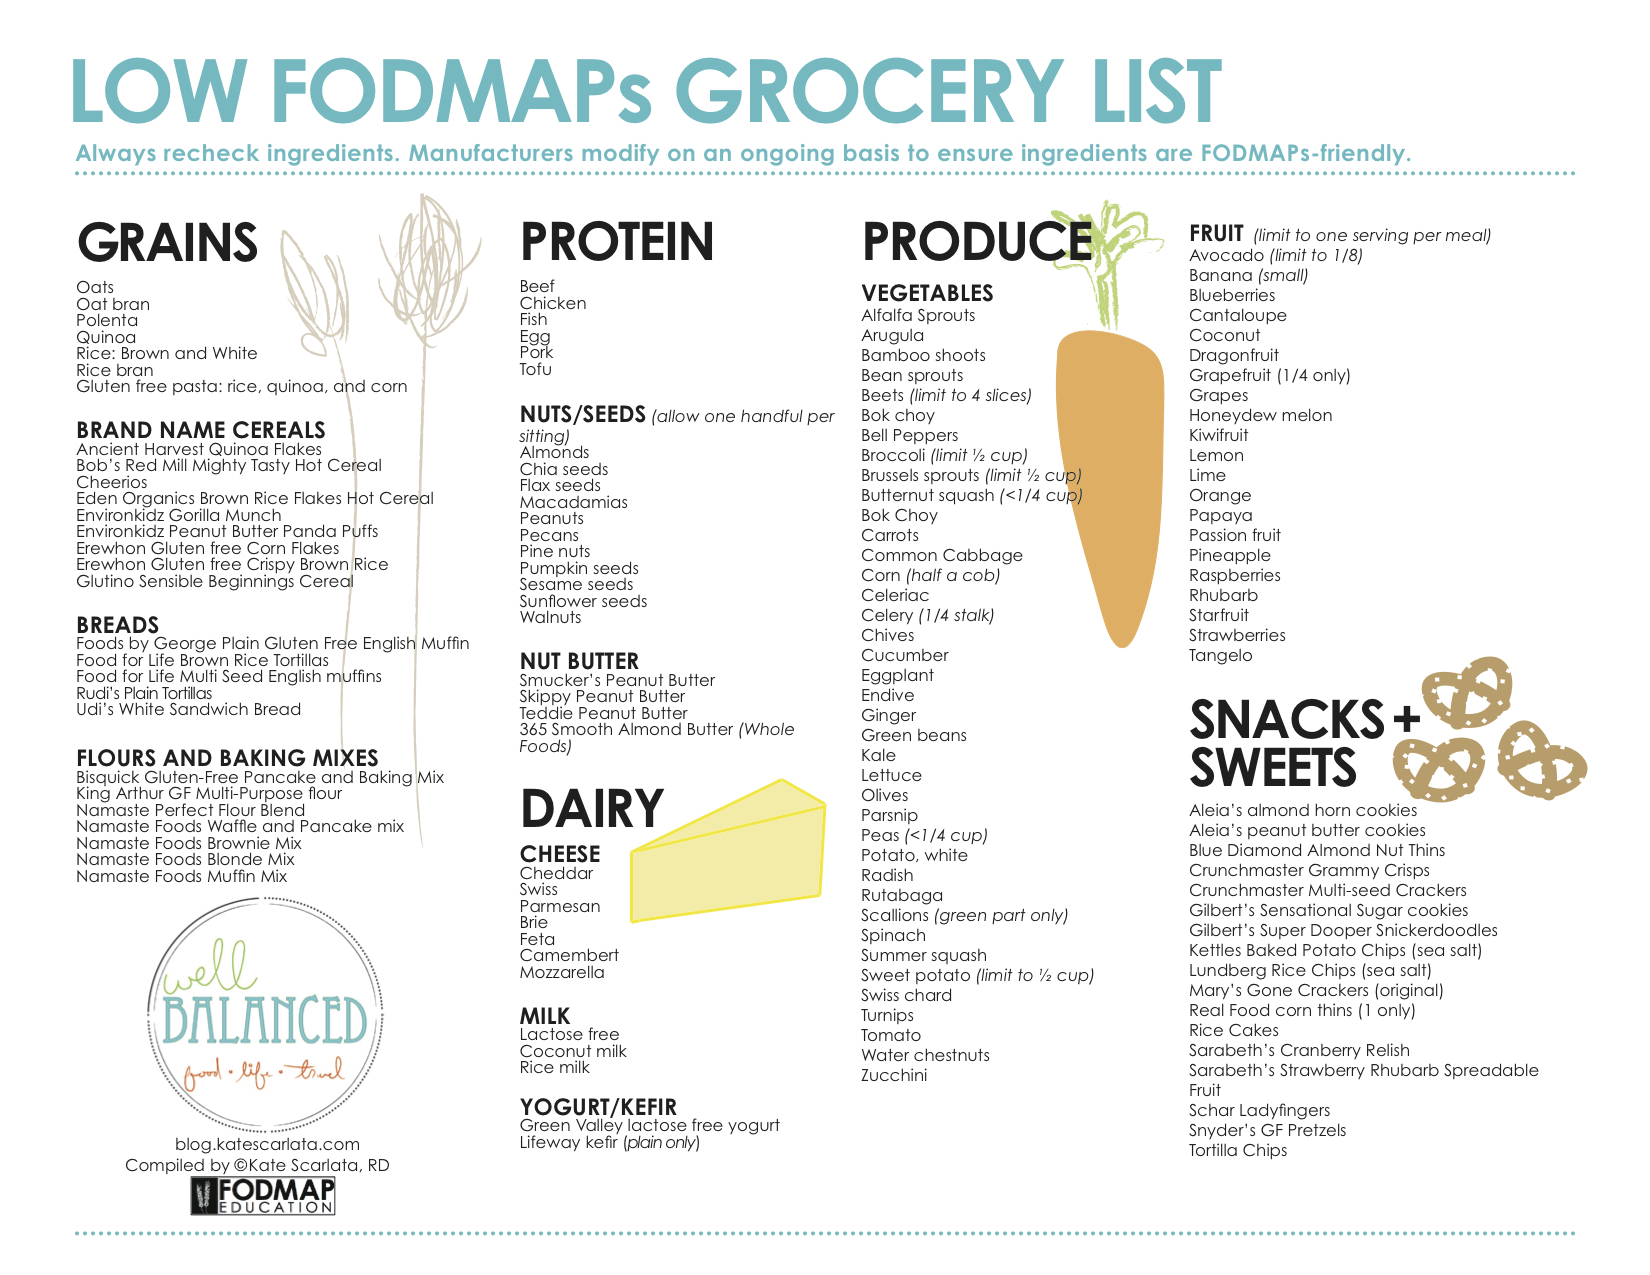 25 Low FODMAP Diet Dinner Recipes